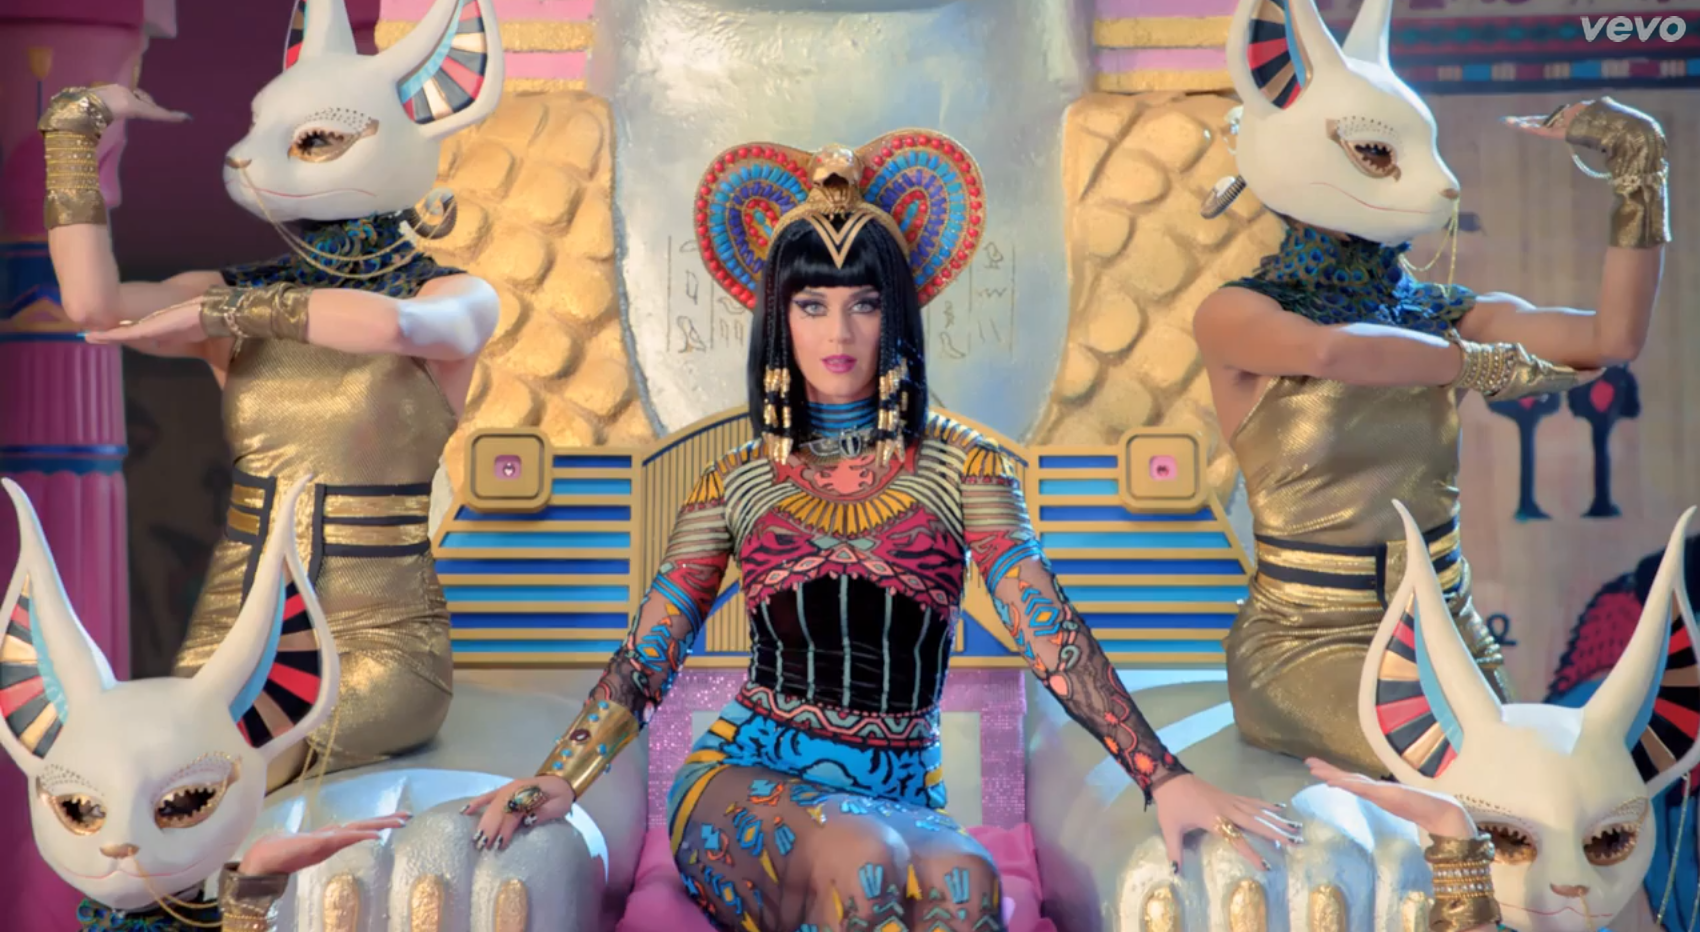 katy perry dark horse music video